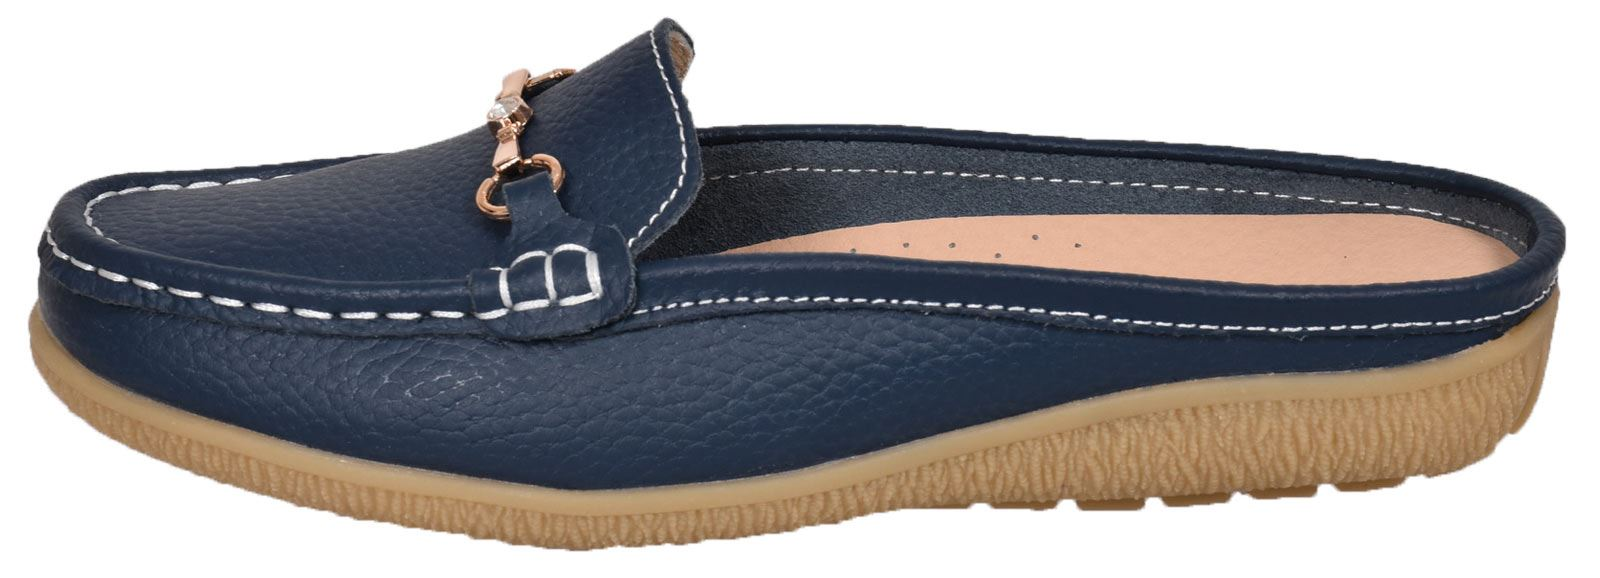 Ladies-Leather-Loafer-Mules-Comfort-Shoes-Womens-Slider-Moccasins-Shoes thumbnail 23